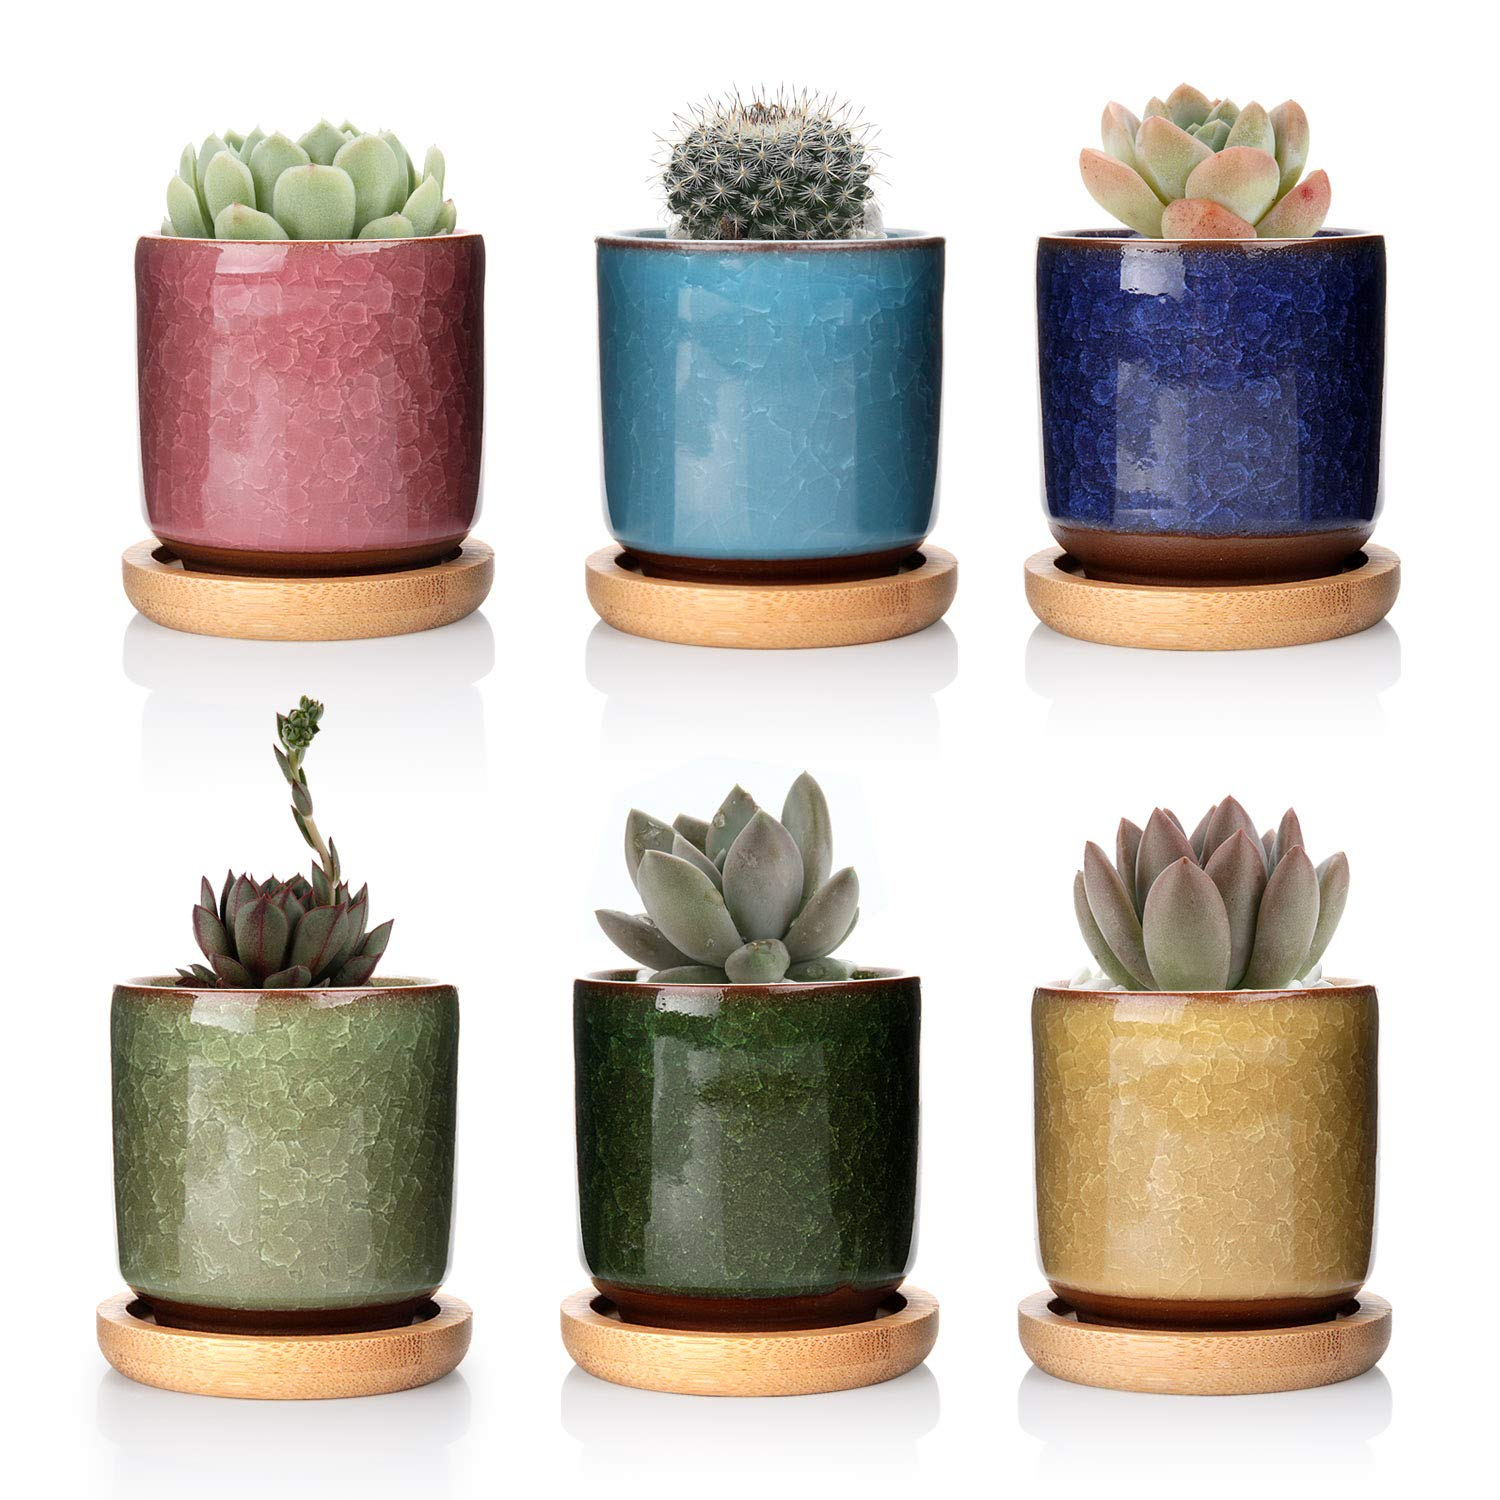 T4U 2.5 Inch Ceramic Ice Crack Zisha Raised Serial Sucuulent Plant Pot Cactus Plant Pot Flower Pot Container Planter with Bamboo Trays Full Colors Package 1 Pack of 6